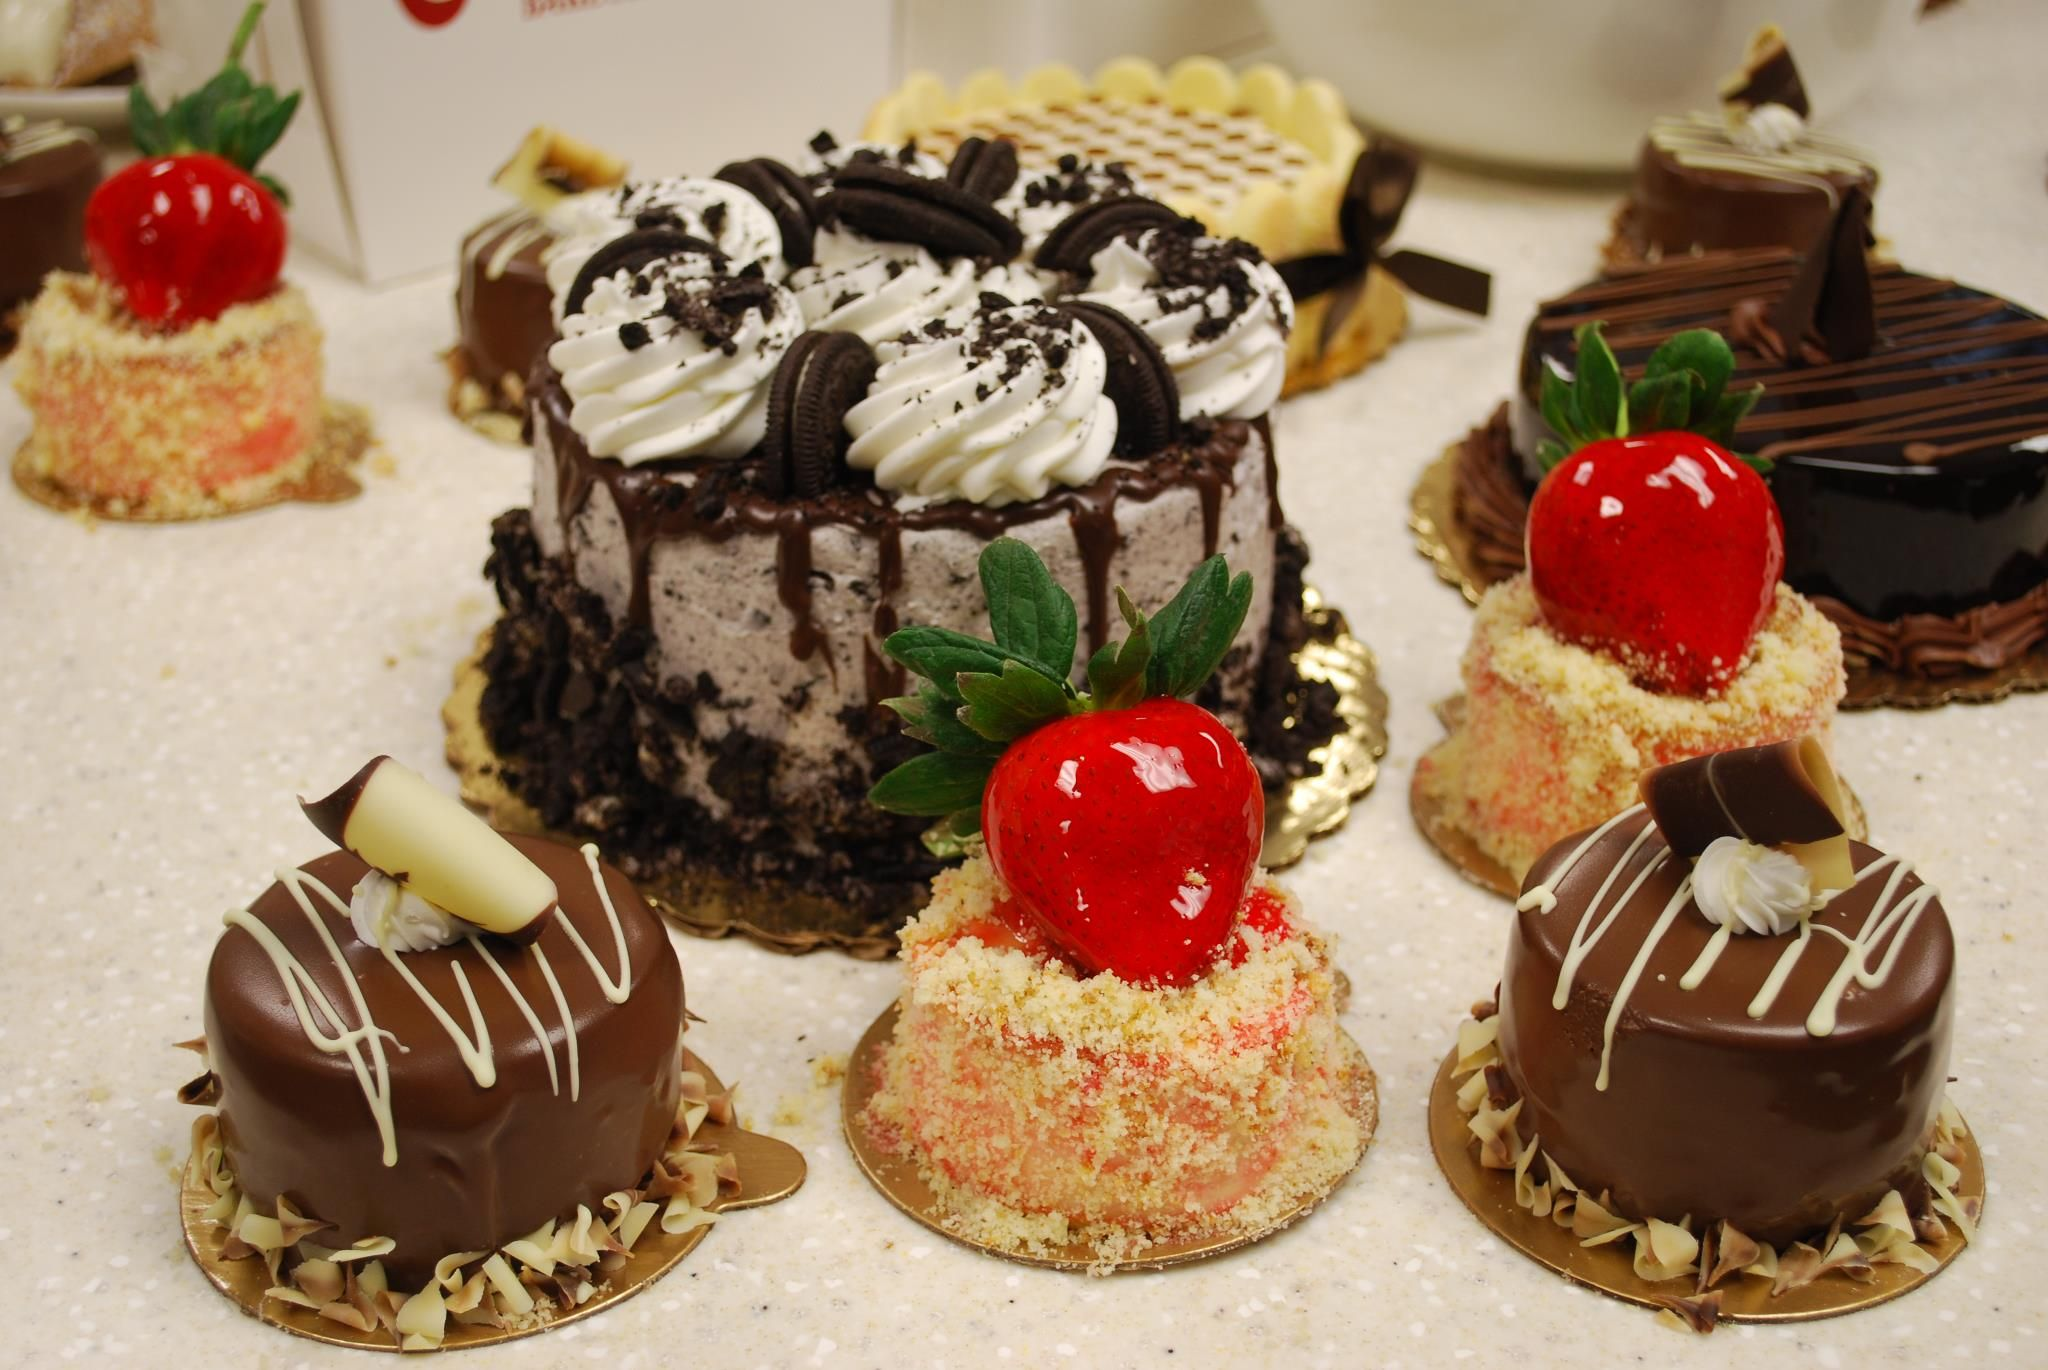 carlo s bakery on breakaway is guaranteed to satisfy your sweet tooth with all kinds